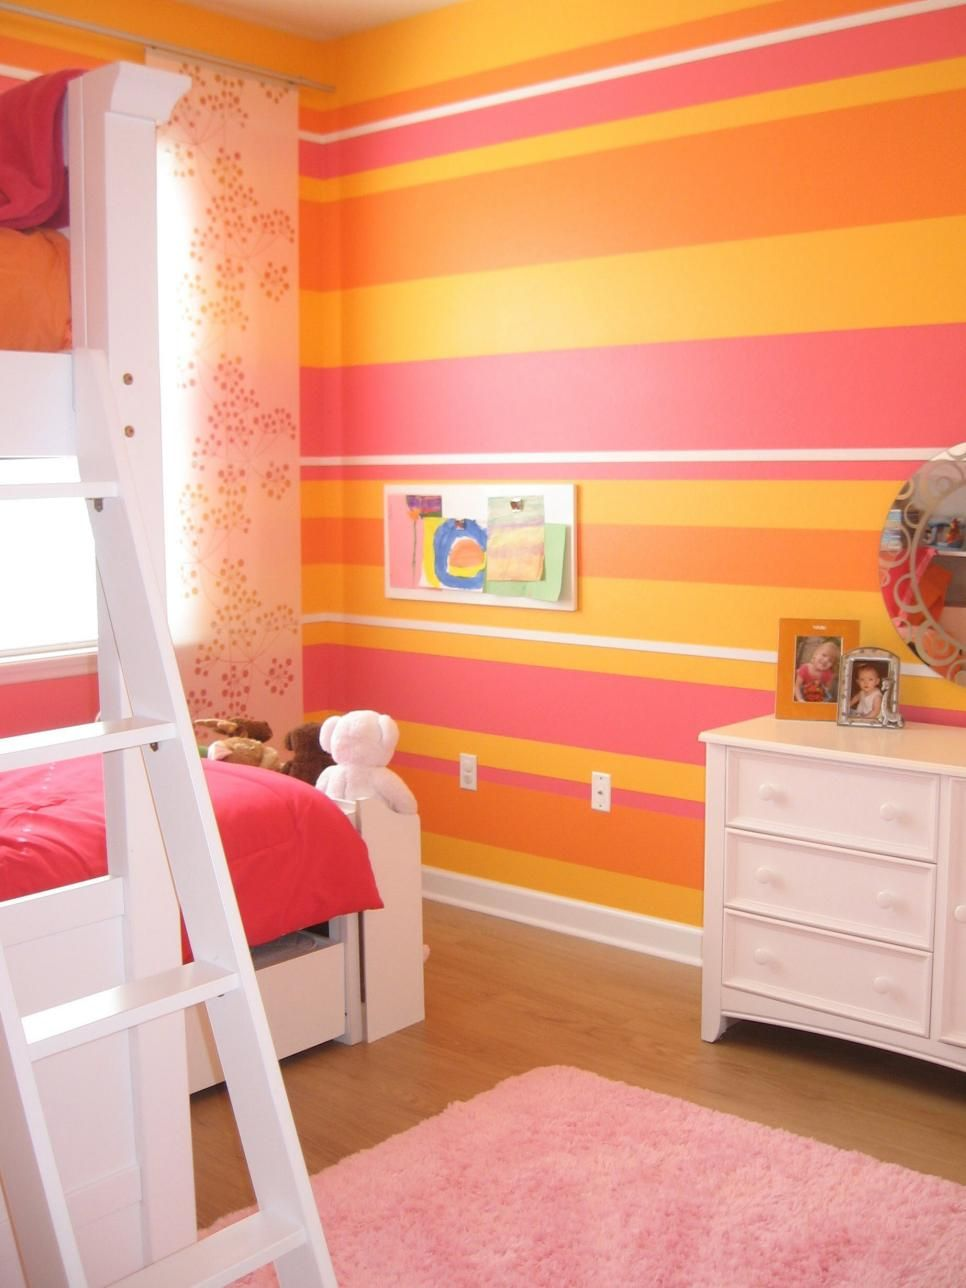 13 ways to create a vibrant and cheerful room | hgtv, natural